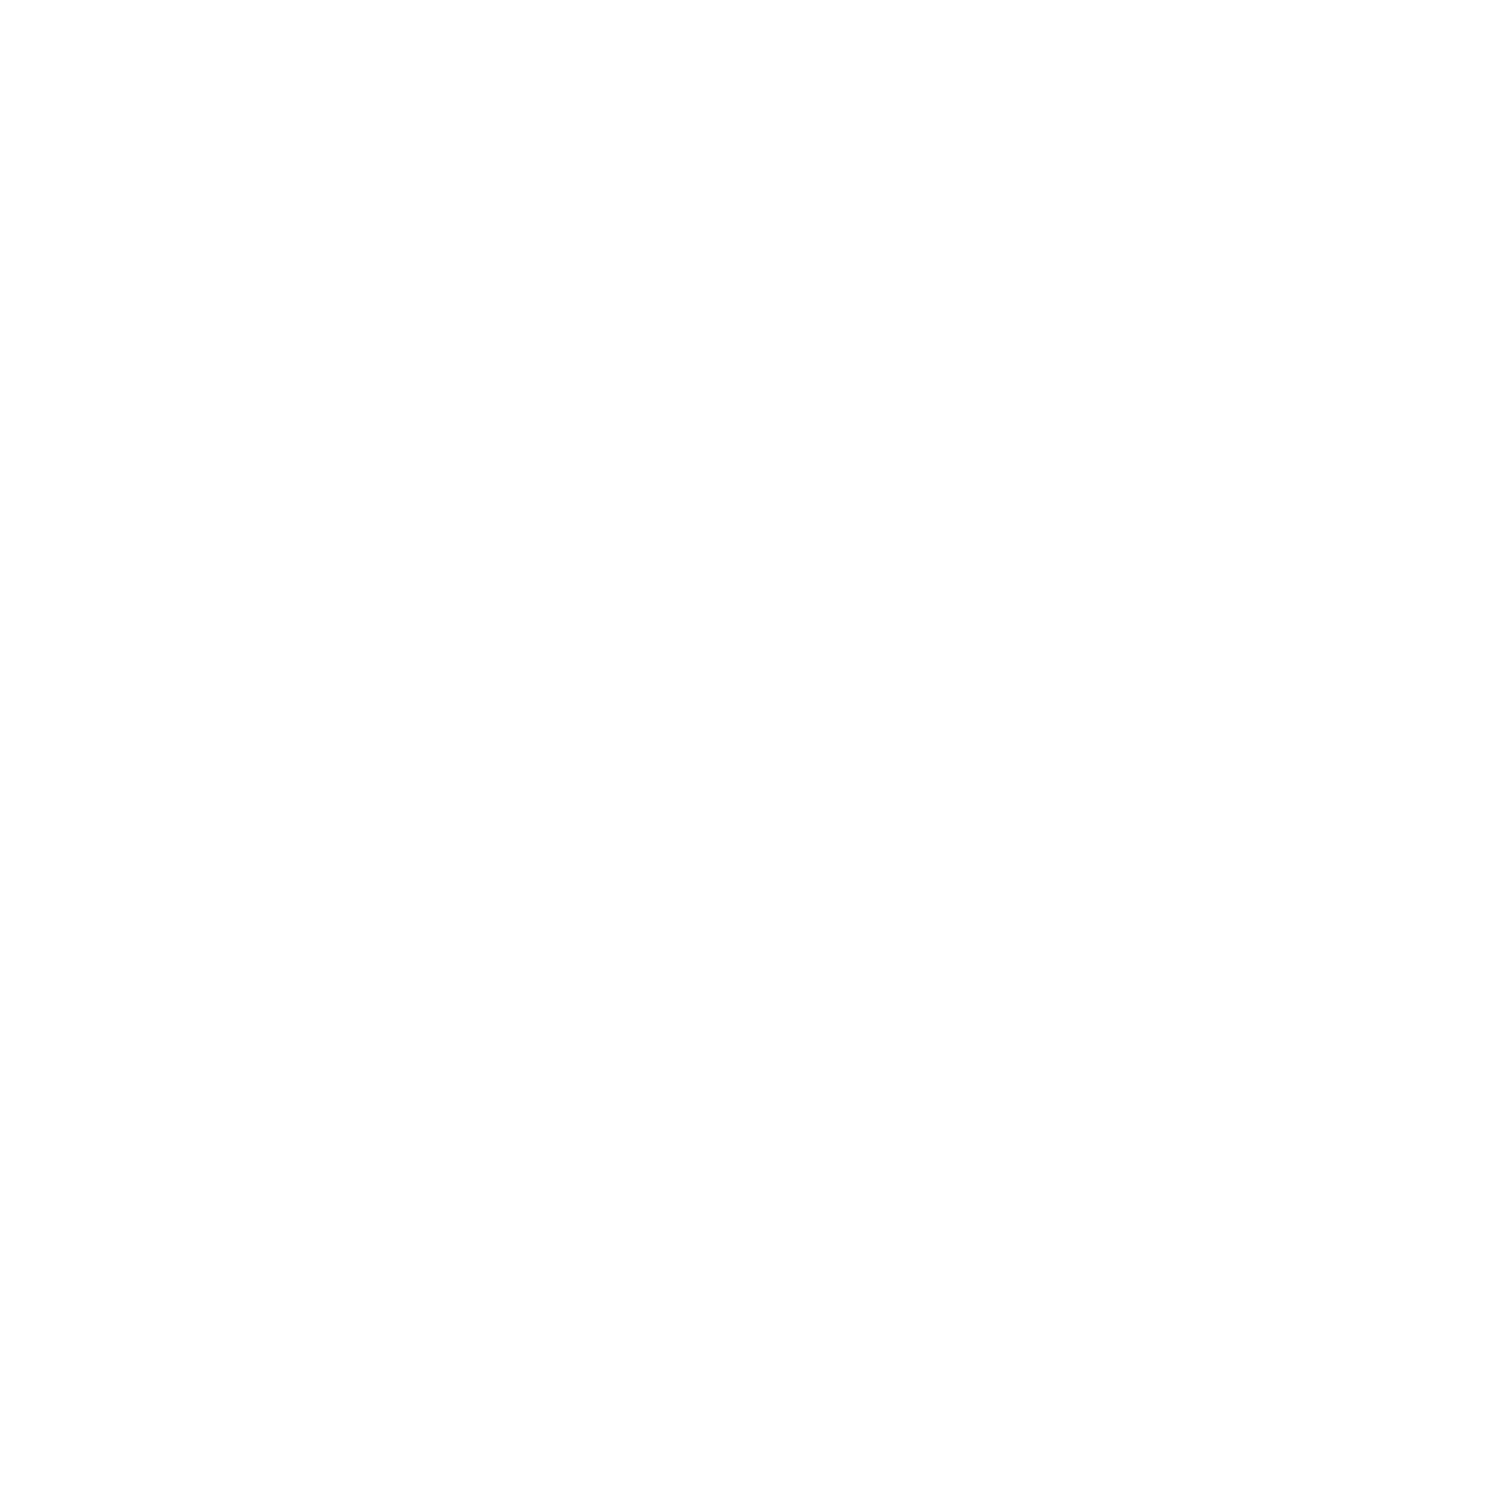 Blueberry Dynamic